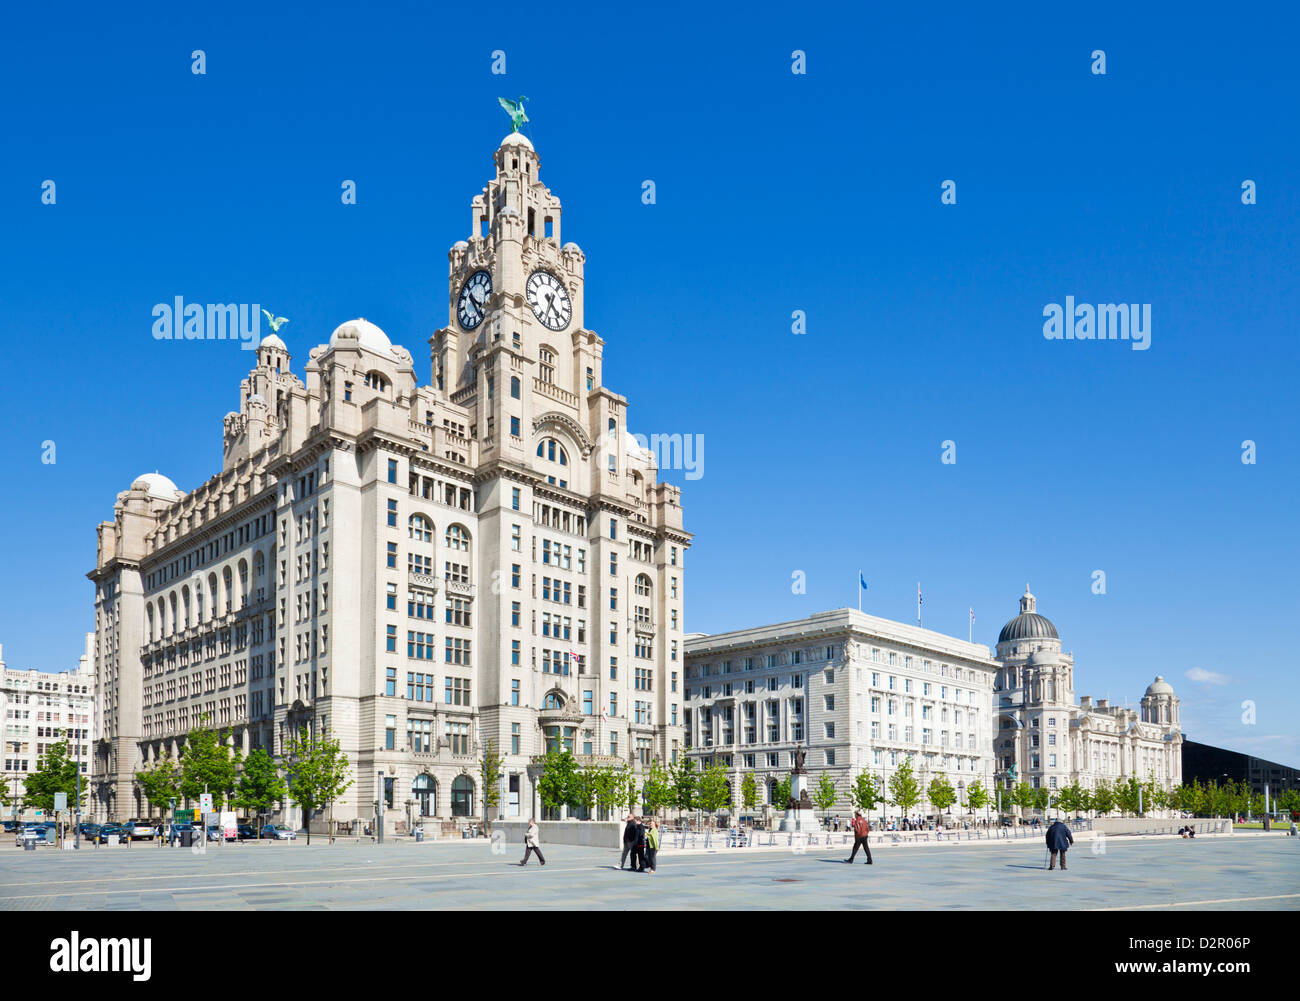 Three Graces buildings, Pierhead, Liverpool waterfront, Liverpool, Merseyside, England, UK - Stock Image